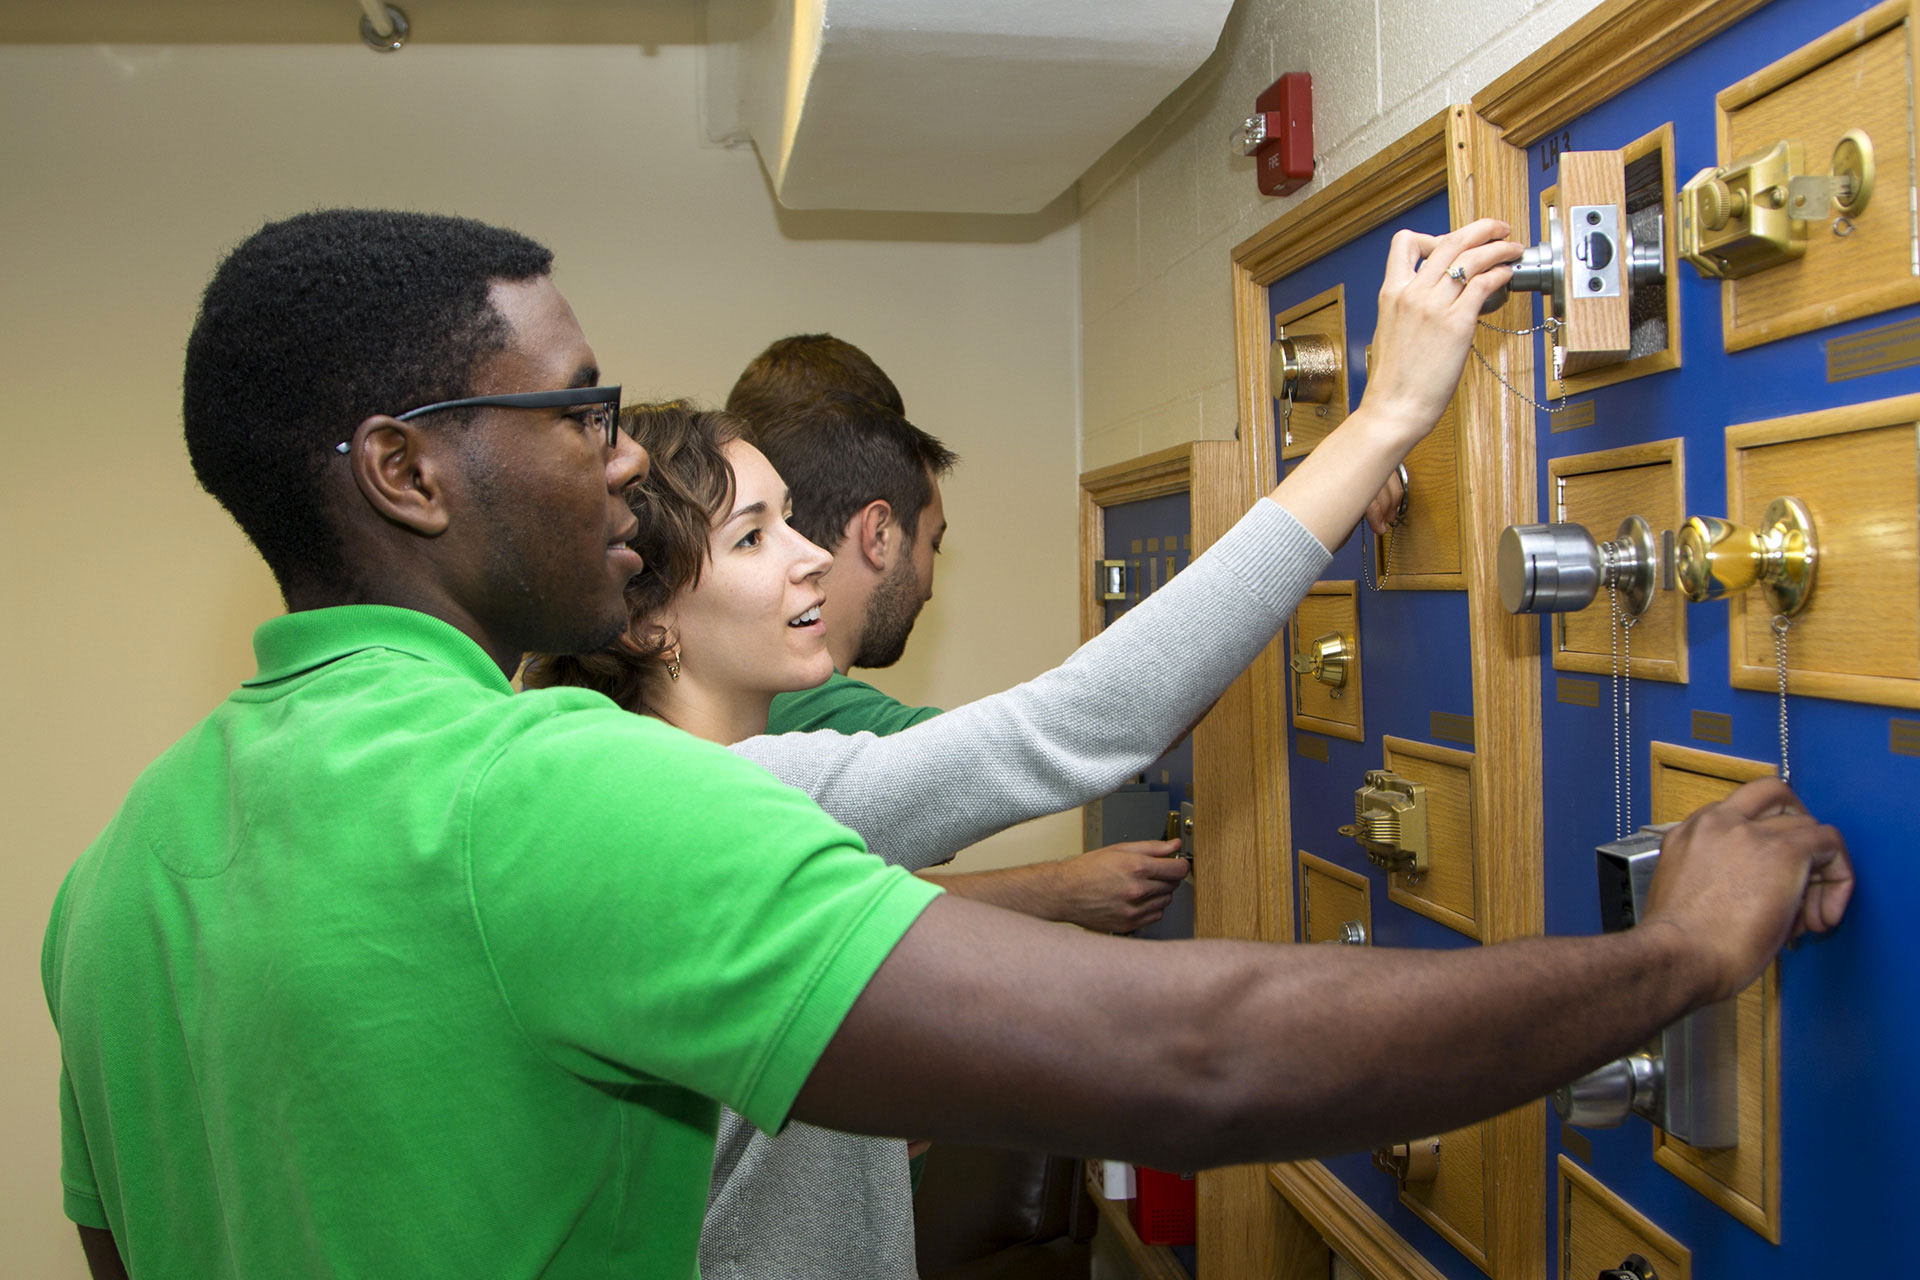 OFMR interns examine different kinds of locks